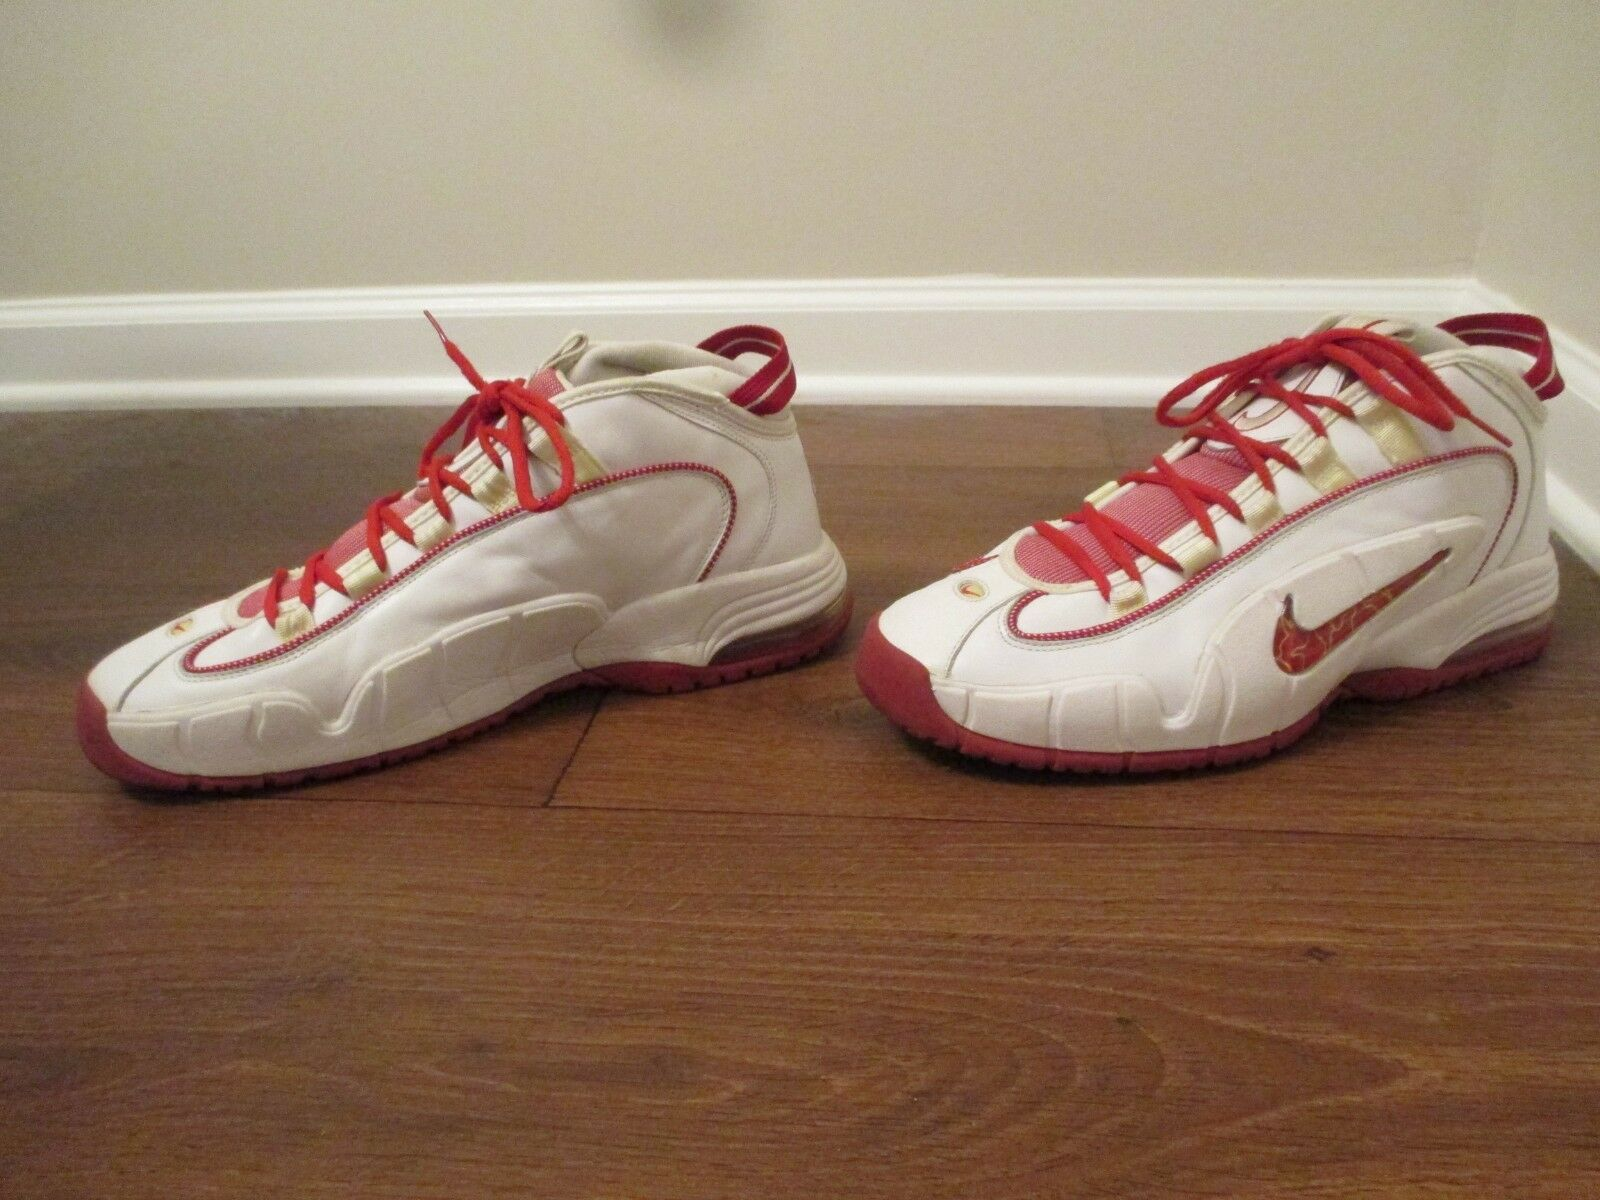 Classic 2005 Used Worn Size 13 Nike Air Max Penny shoes White & Varsity Red